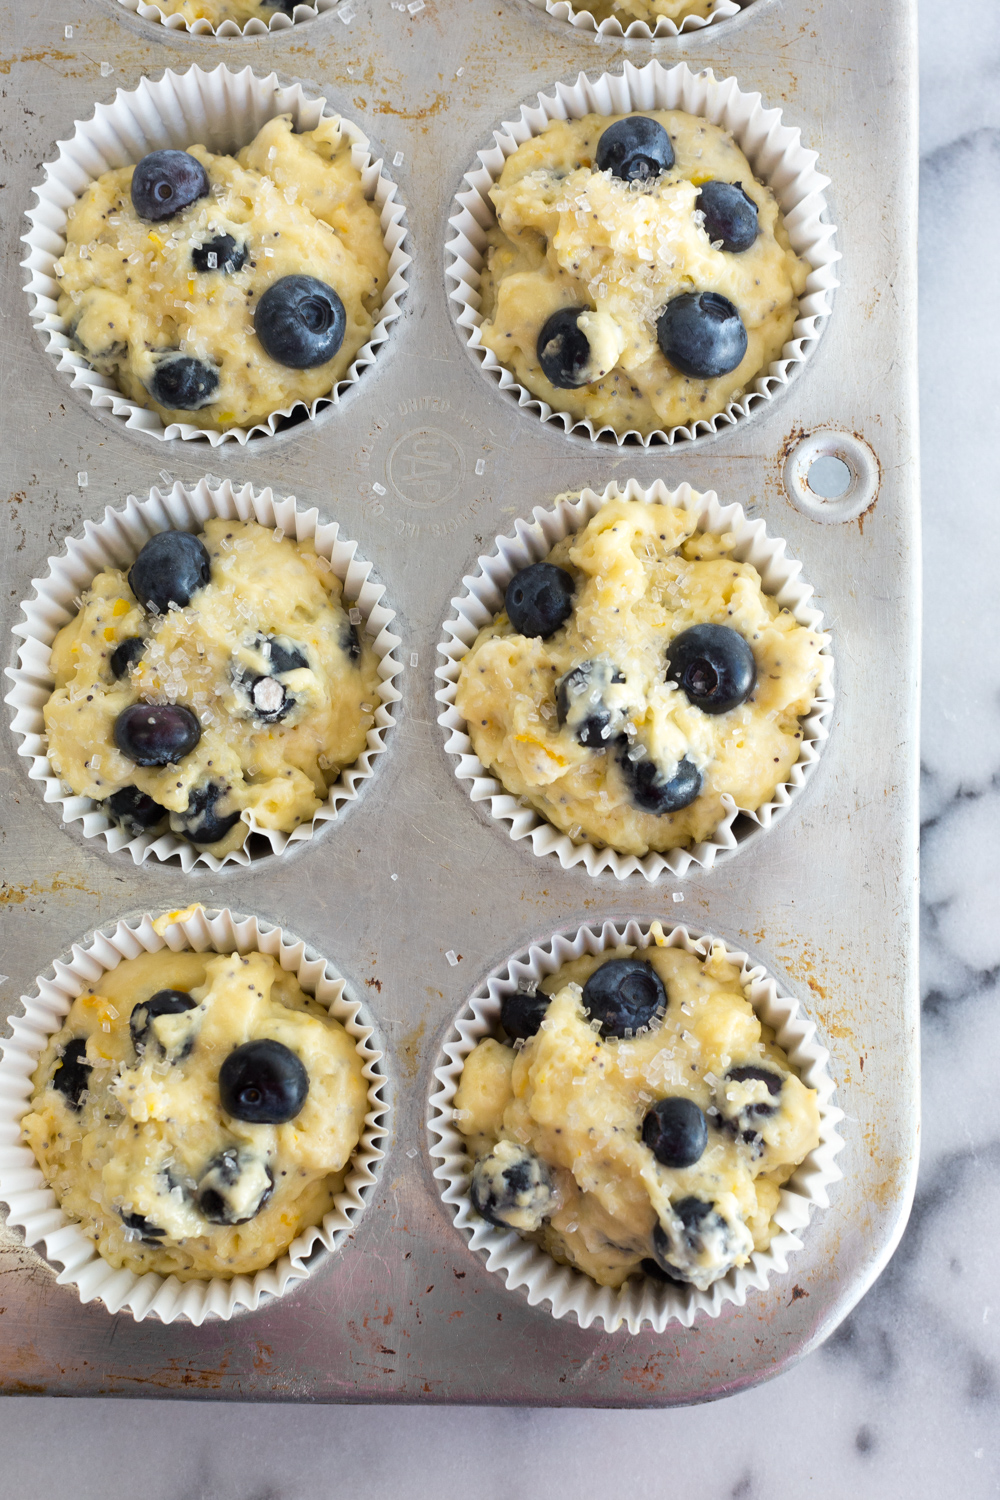 Muffin tin filled with Blueberry Lemon Poppy Seed Muffin batter.